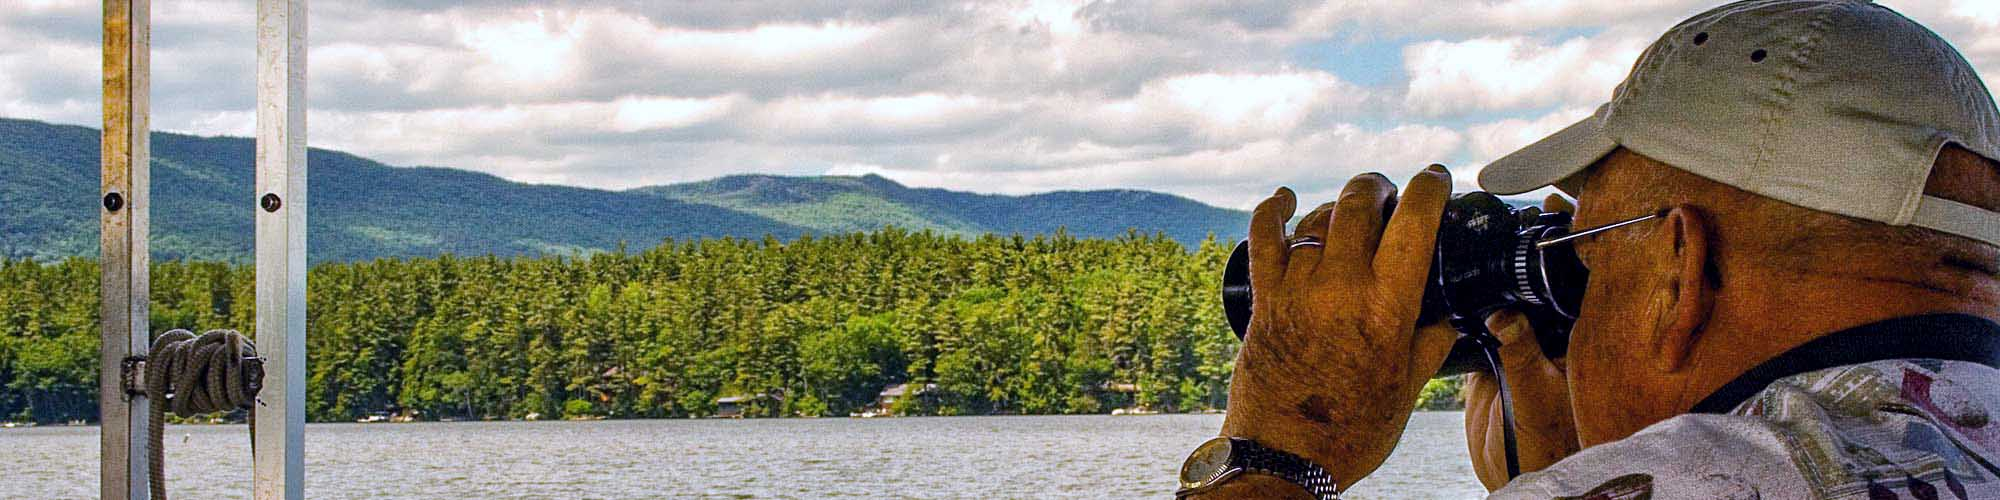 Person looking through binoculars at wildlife on Squam Lake